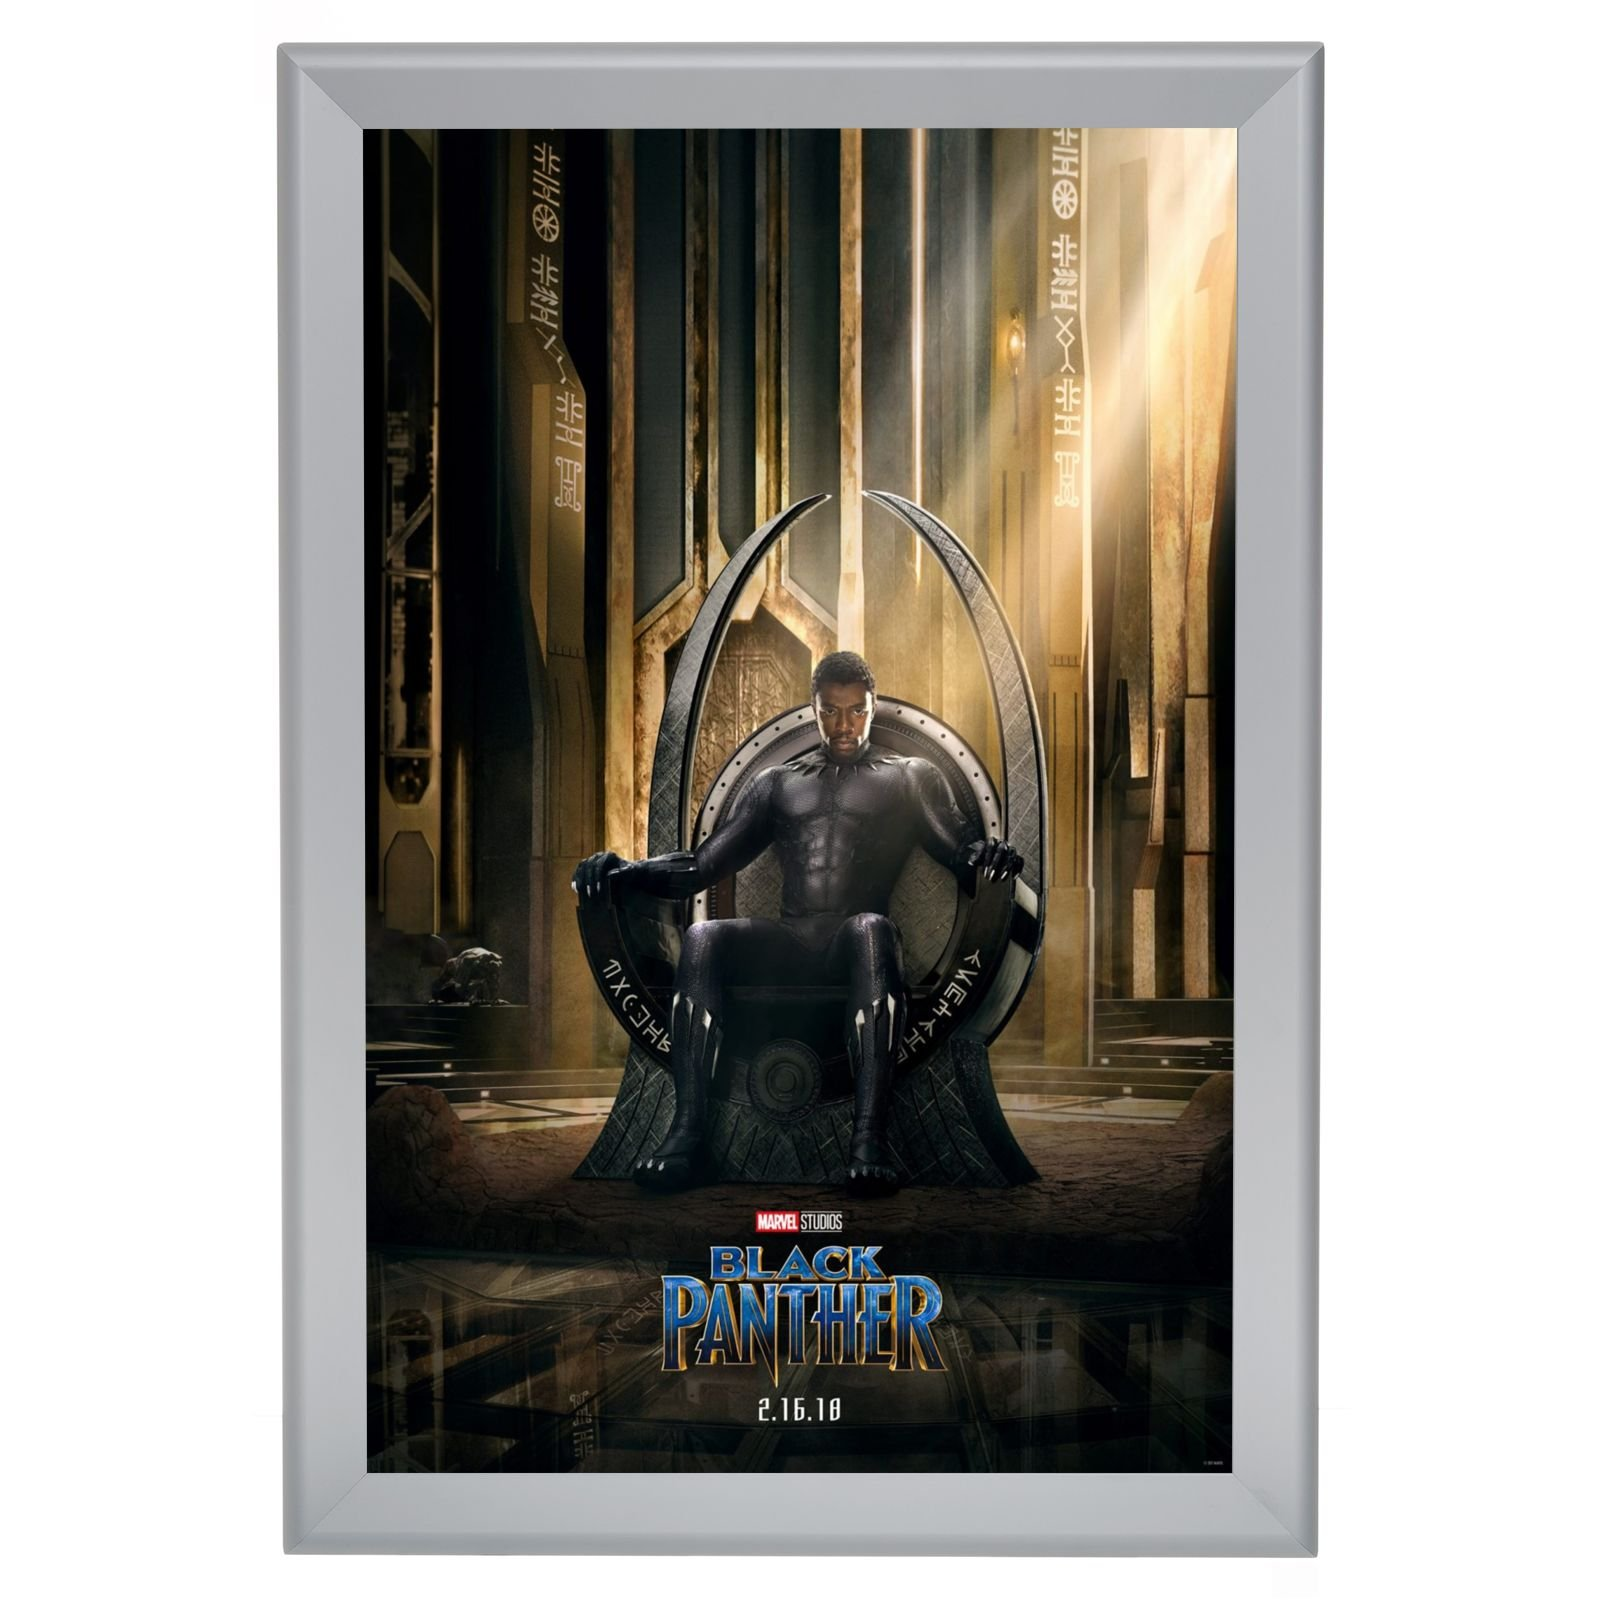 Movie Poster Frame 27x40 Inches, Silver SnapeZo 1.7'' Aluminum Profile, Front-Loading Snap Frame, Wall Mounting, Wide Series for One Sheet Movie Posters